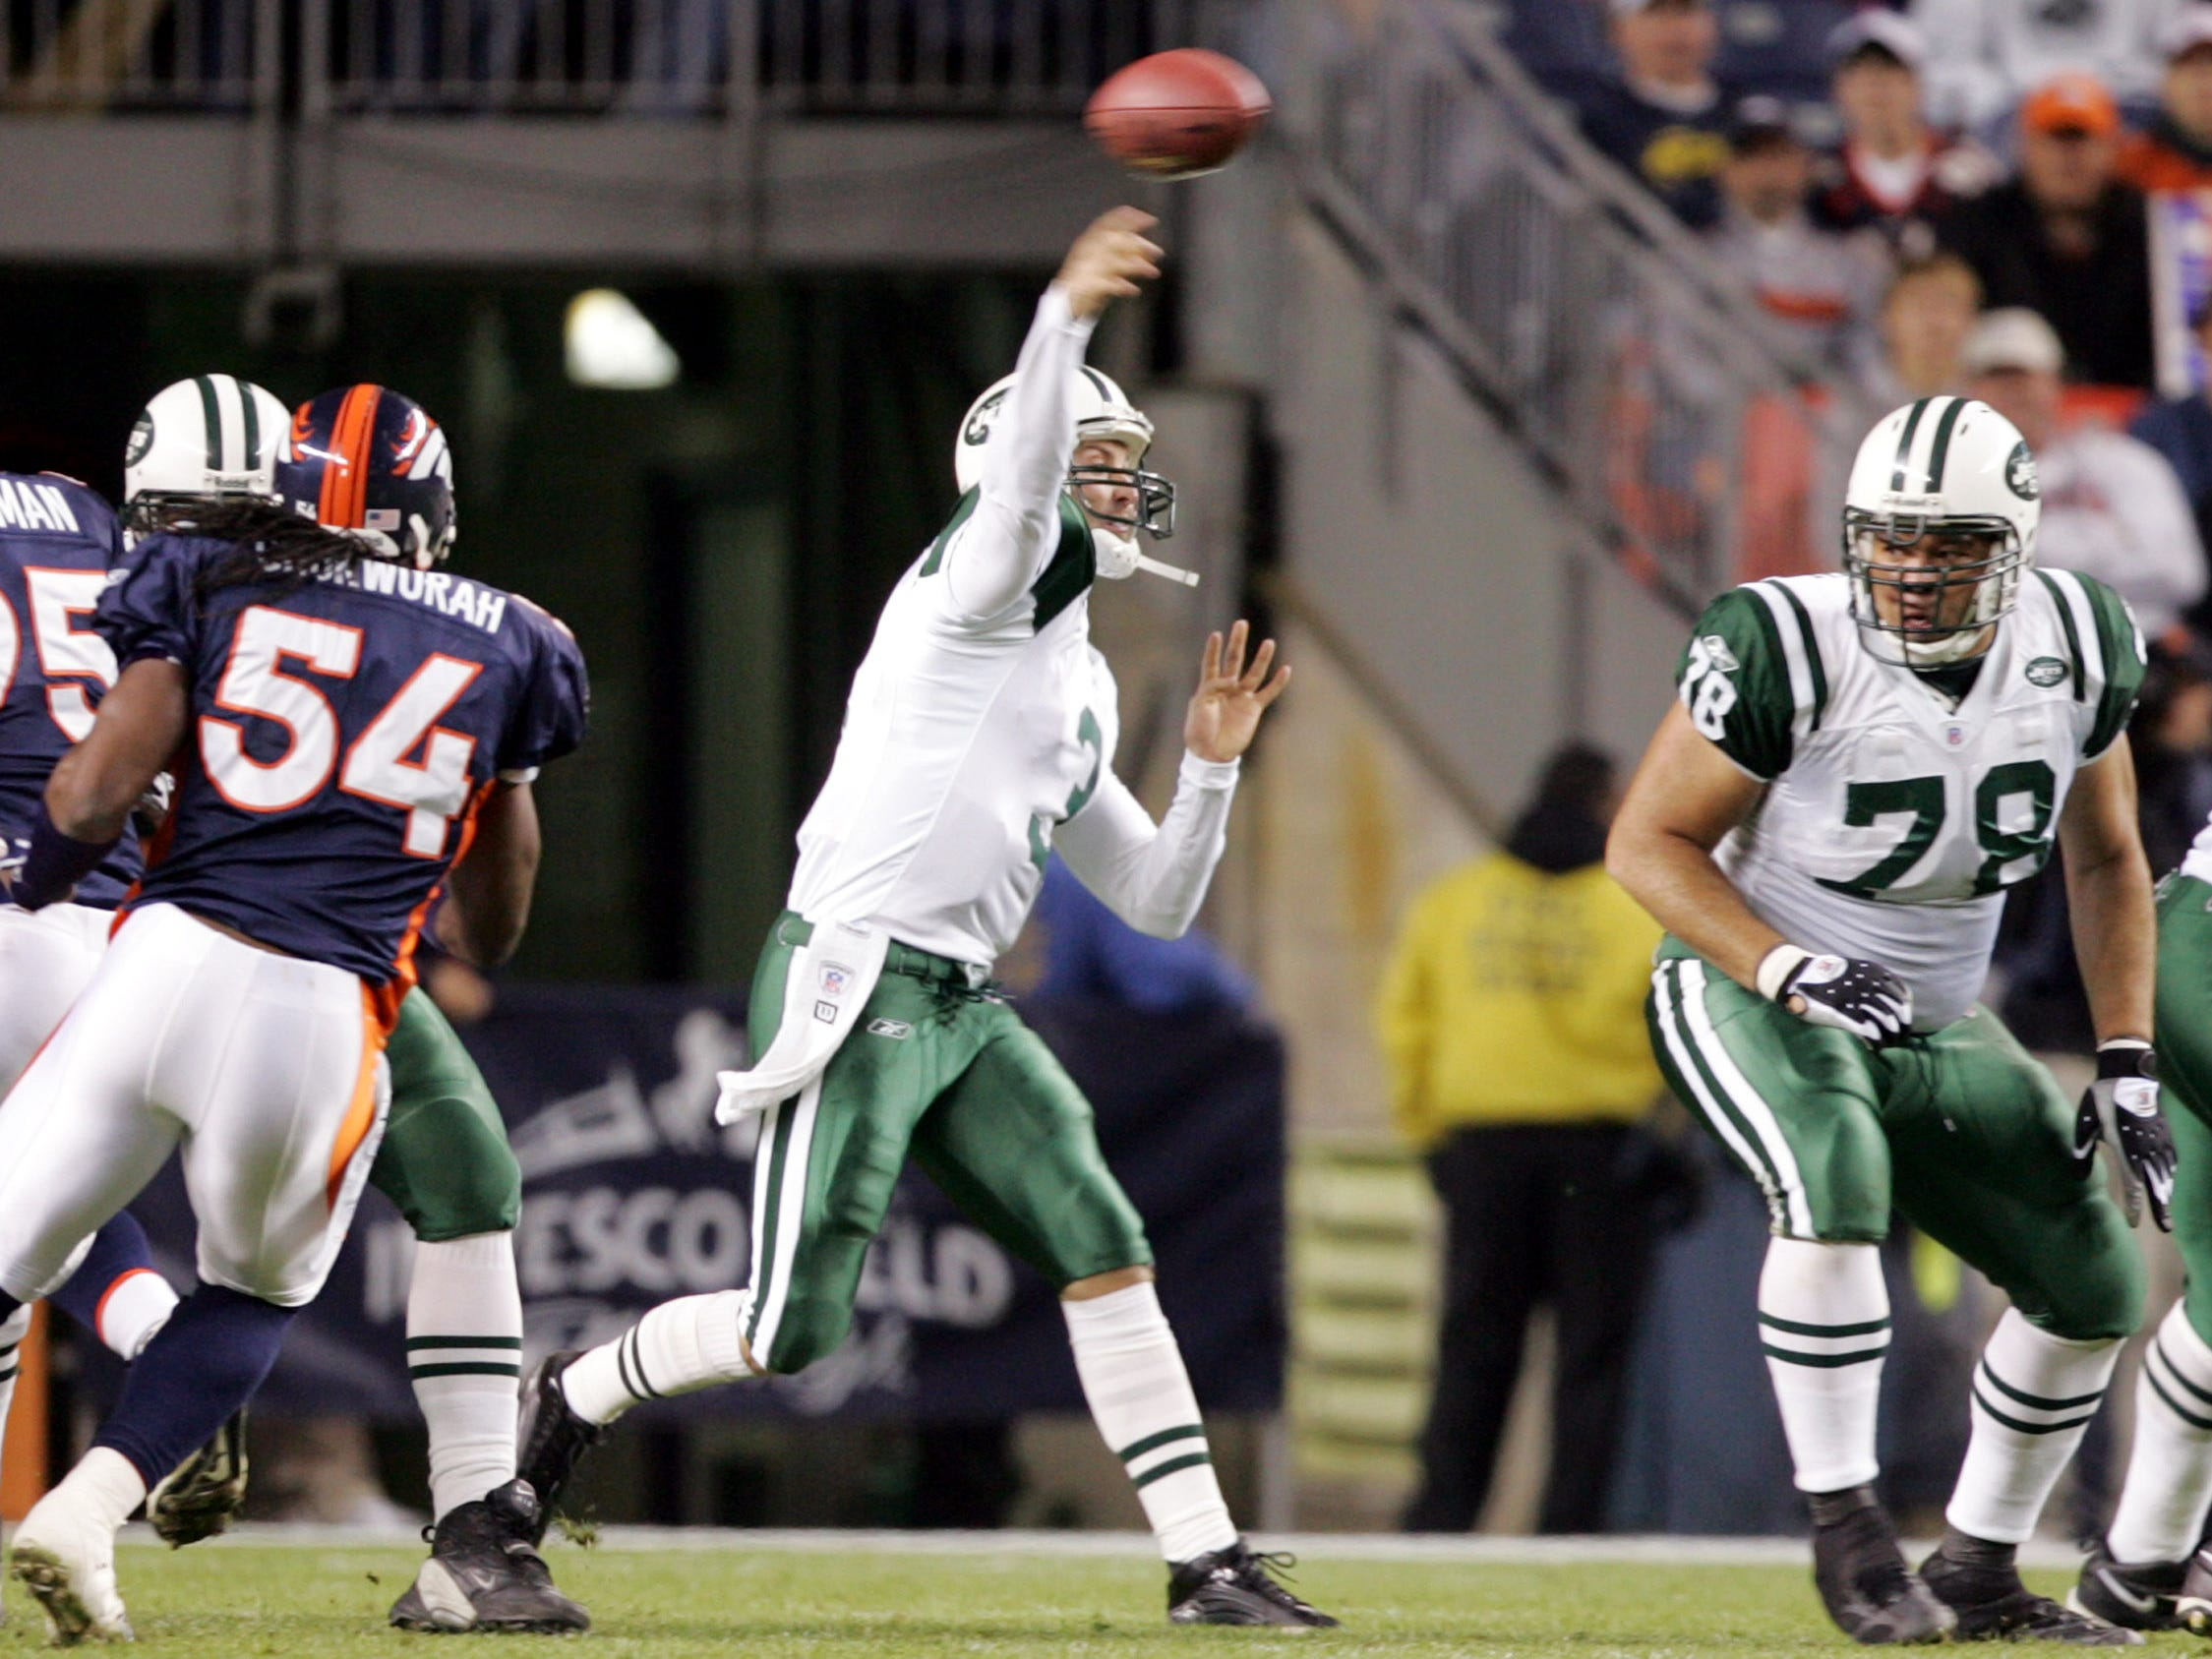 New York Jets third-string quarterback Kliff Kingsbury fires a pass from the pocket in the final seconds of the Jets 27-0 loss to the Denver Broncos in Denver on Sunday, Nov. 20, 2005.